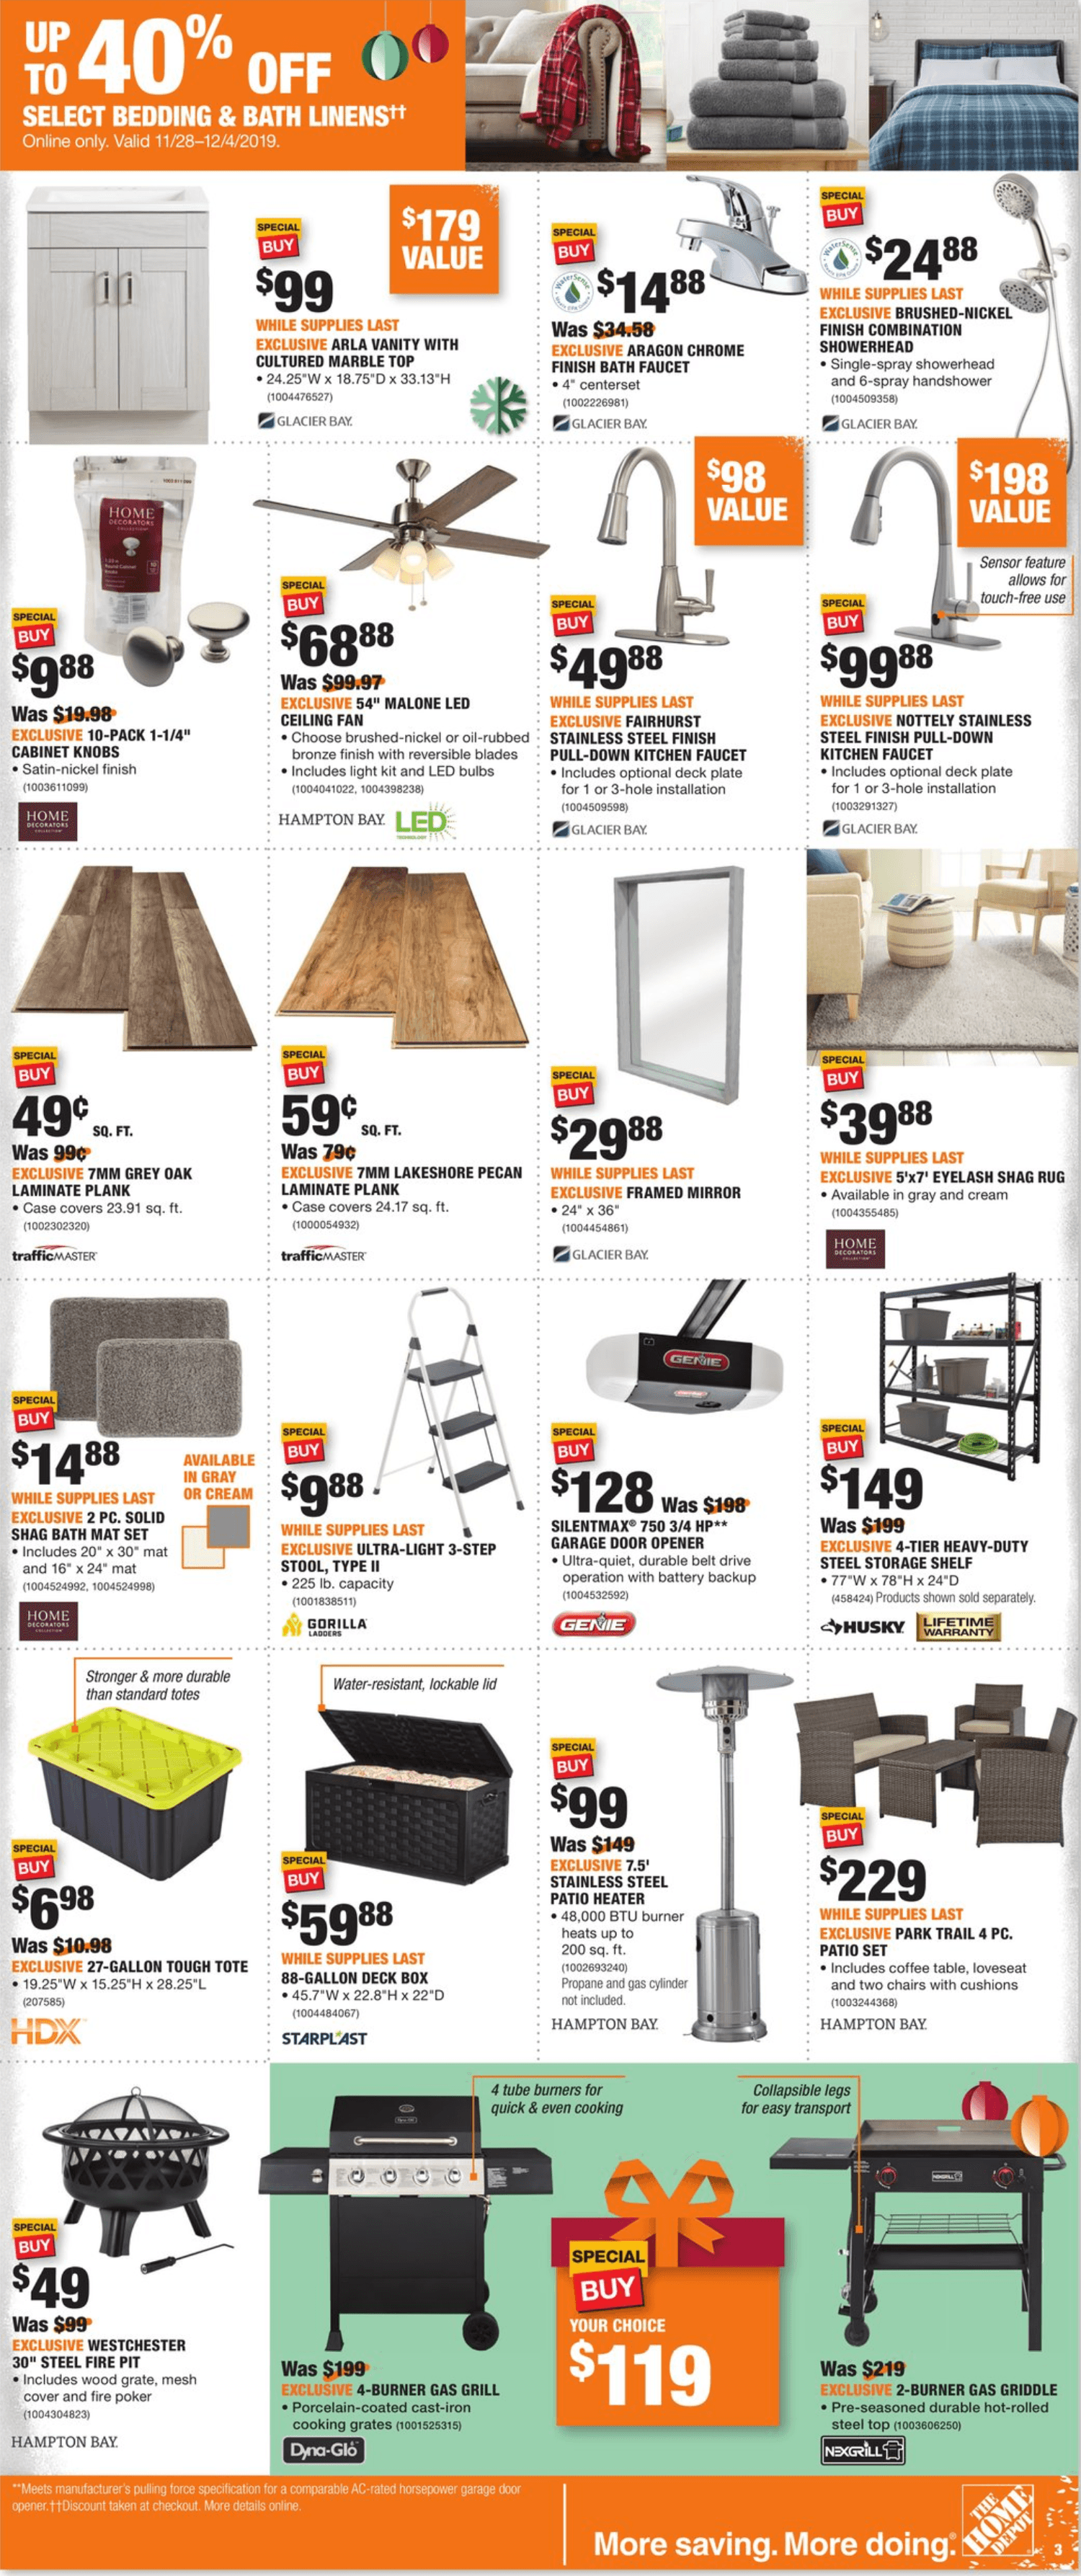 Home Depot Black Friday 2019 Page 3